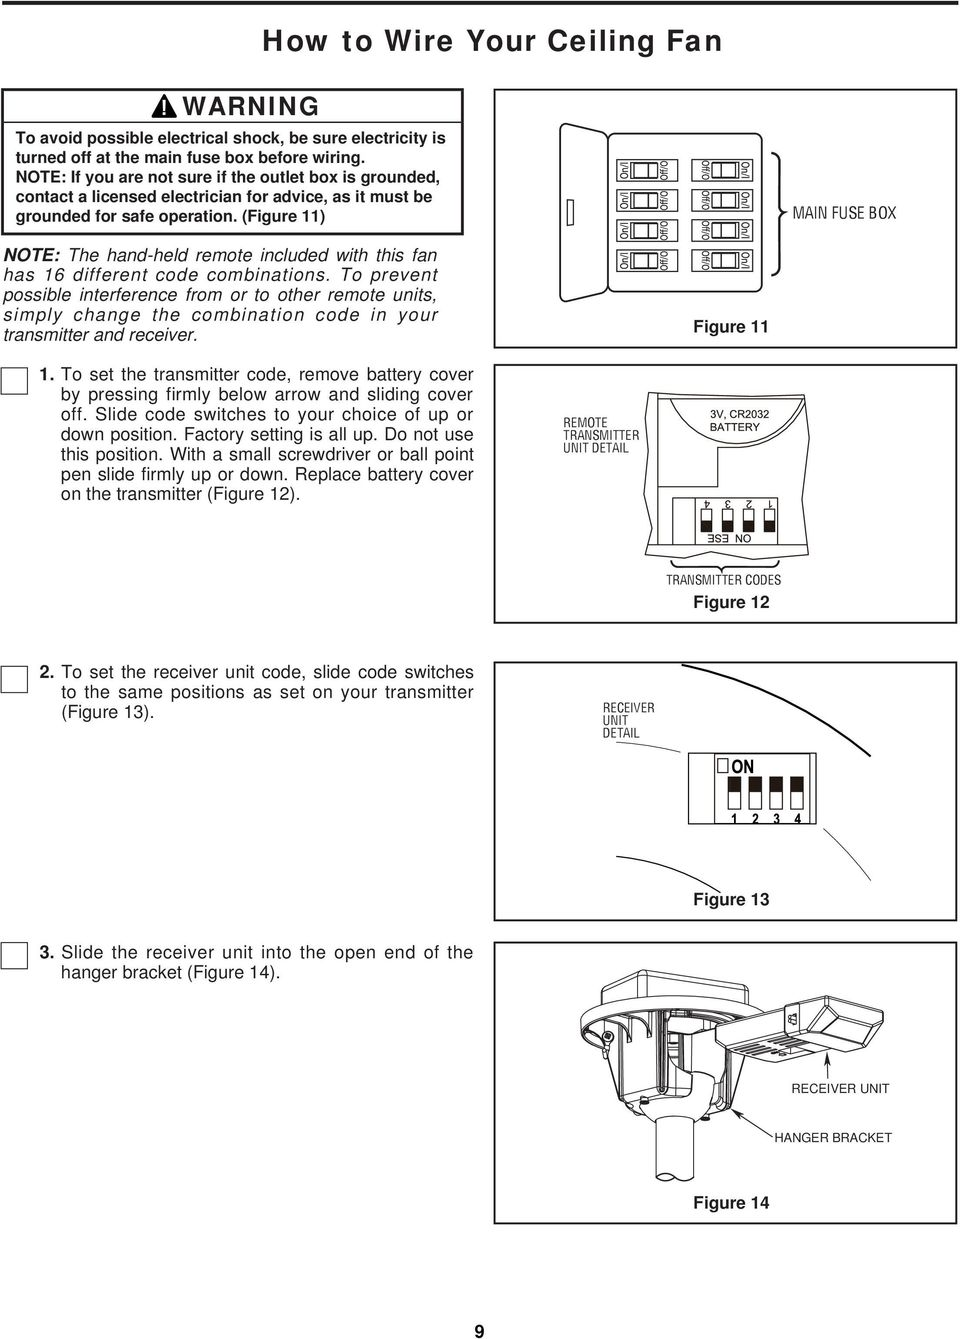 (Figure 11) MAIN FUSE BOX NOTE: The hand-held remote included with this fan has 16 different code combinations.